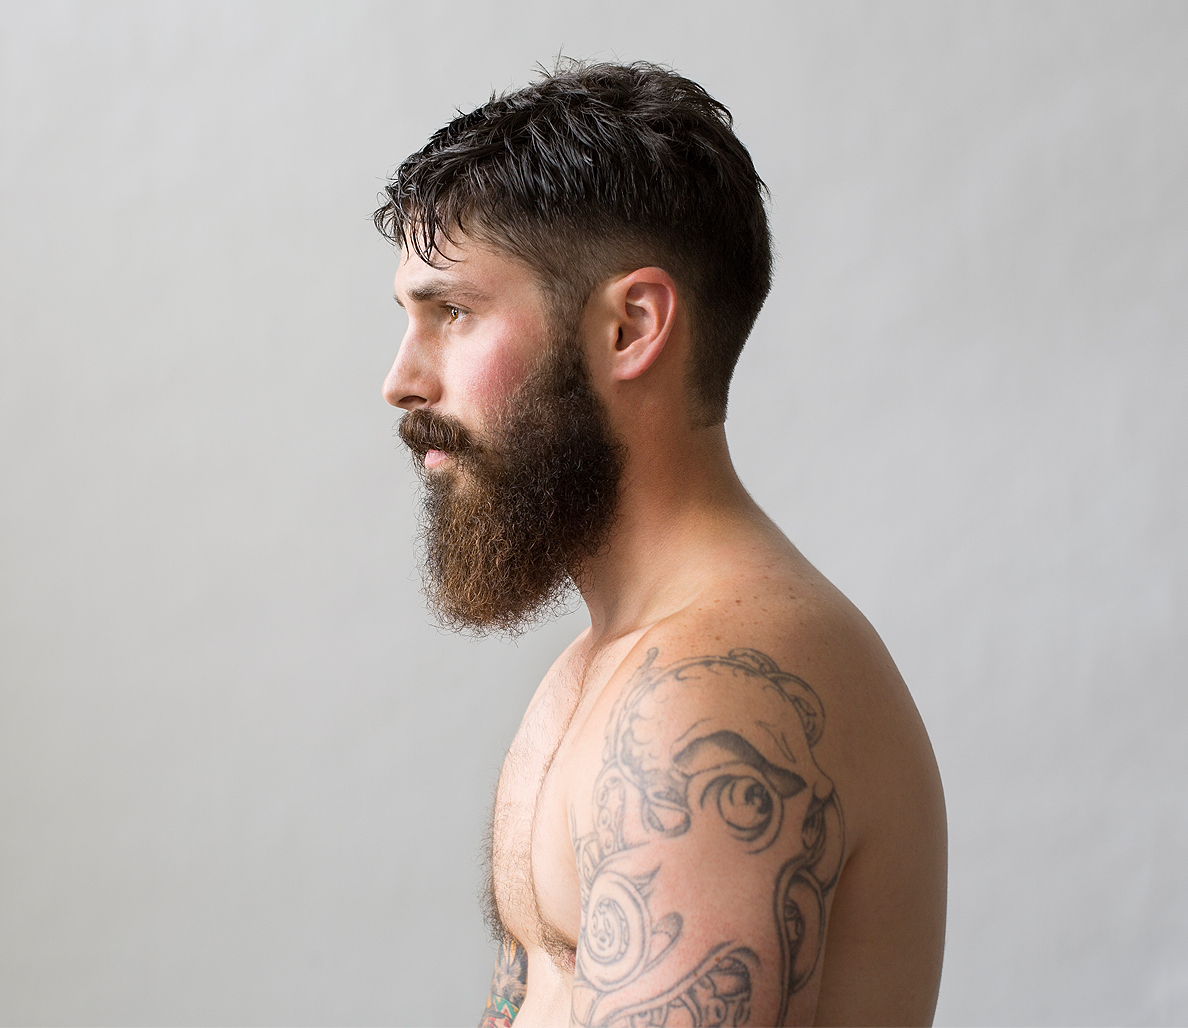 Nice Images Collection: Beard Desktop Wallpapers